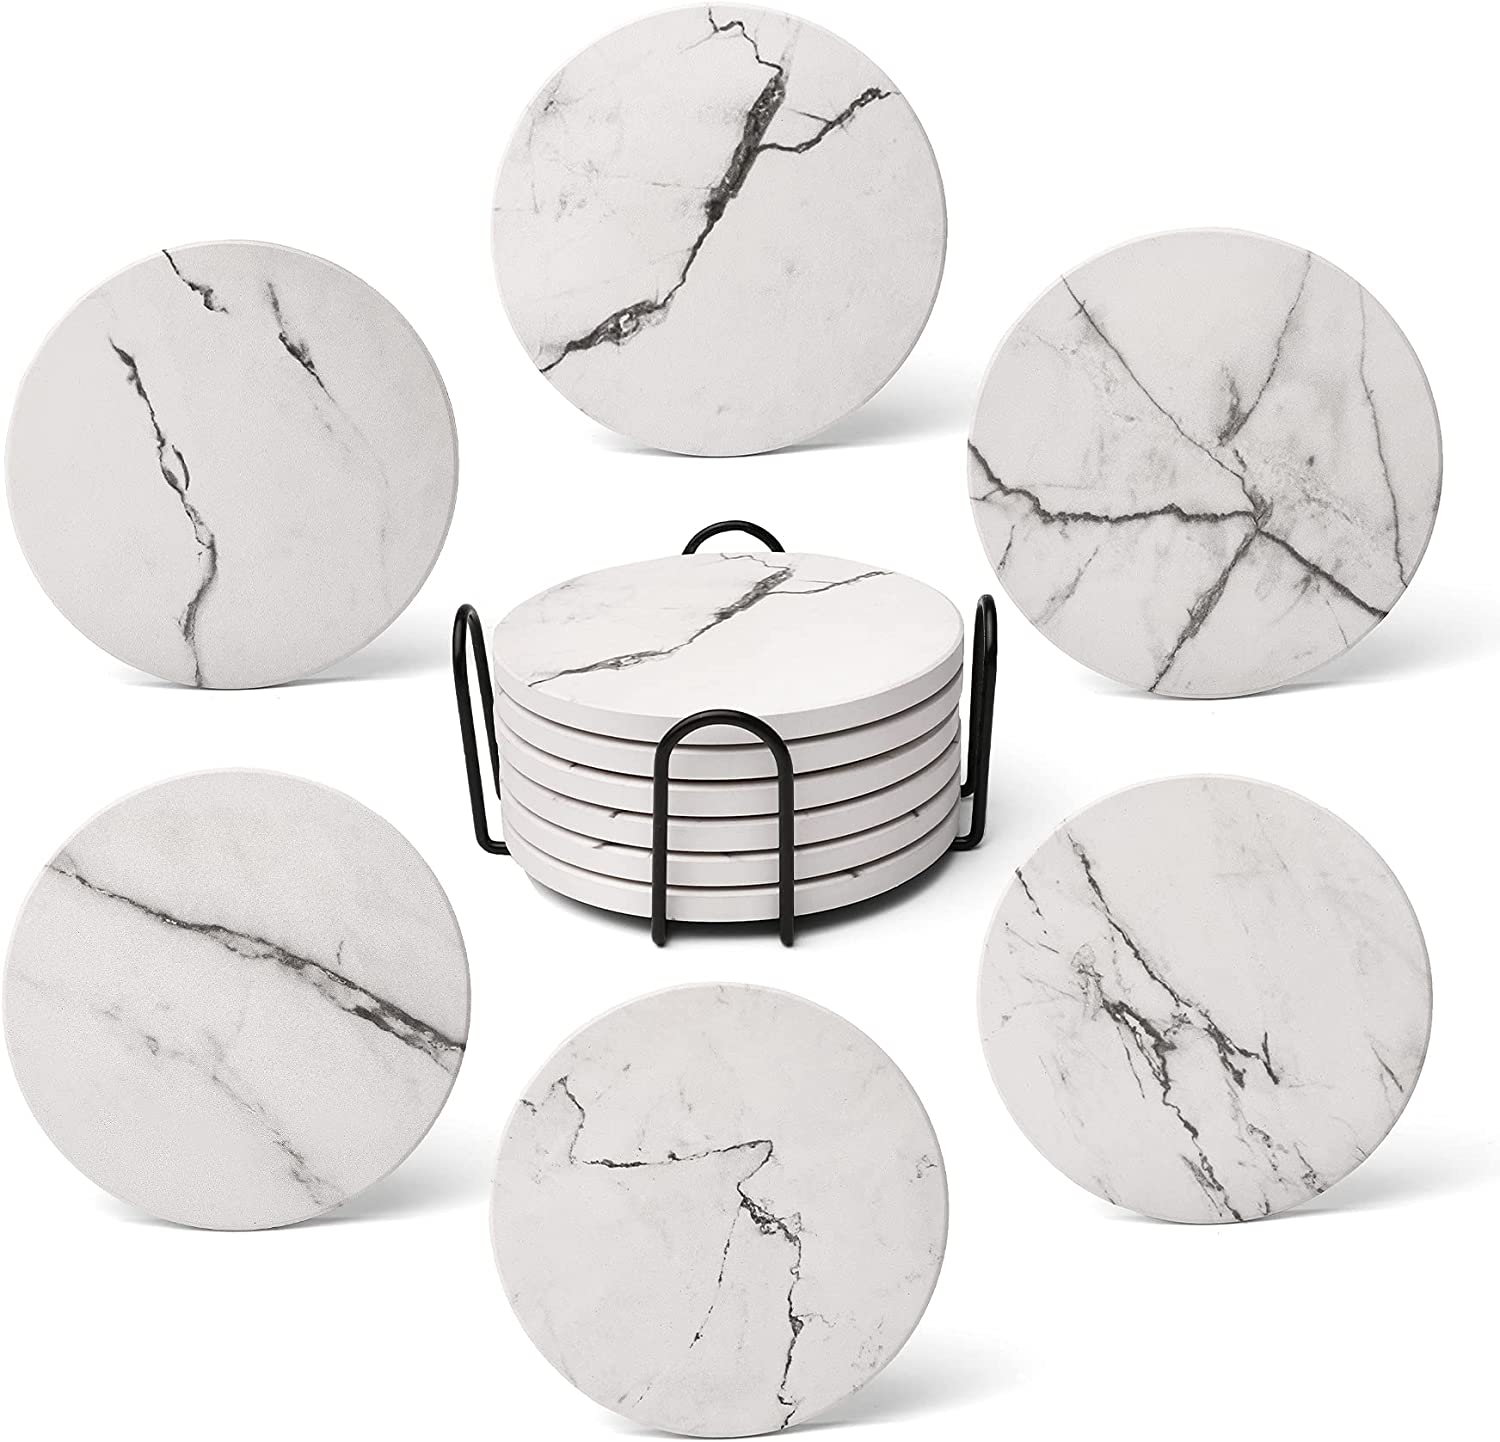 Coasters for Drinks, Absorbent Drink Coasters Marble Style Ceramic Absorbent Coasters with Holder(6-Piece Set) Cups Place Mats for Home Decor